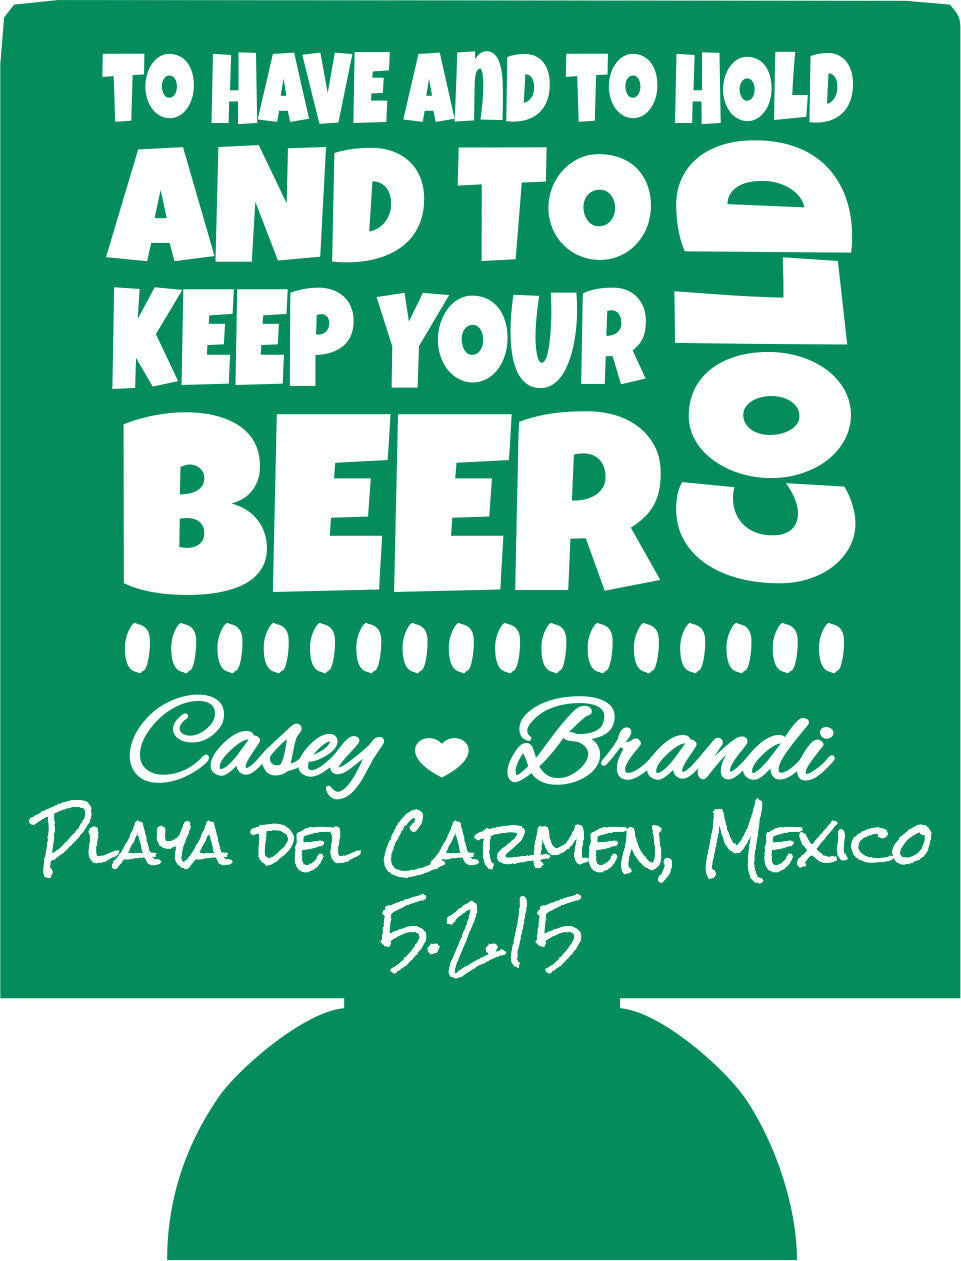 To have and to hold and keep your Cerveza cold Wedding coozie